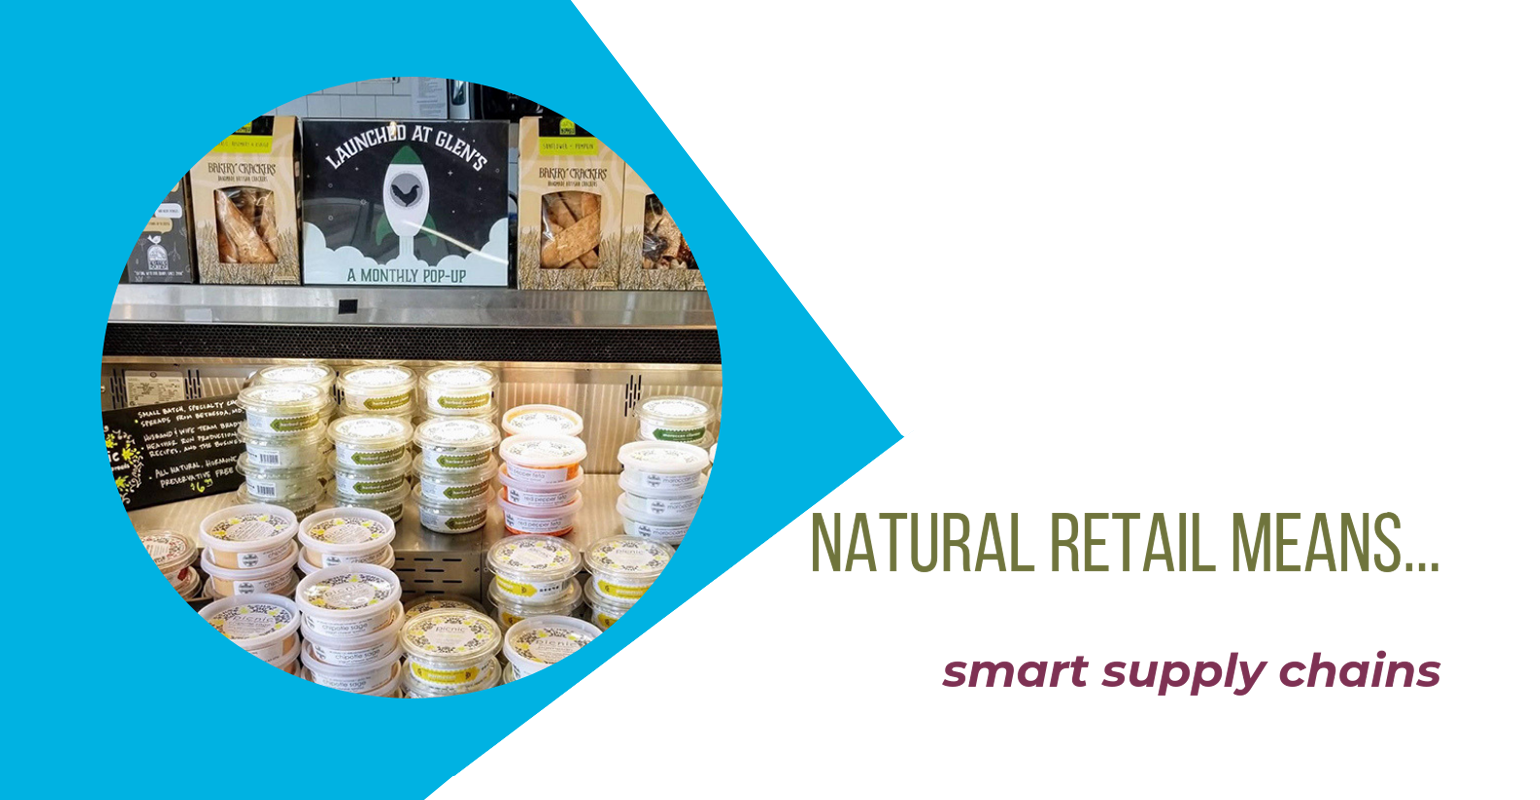 Natural retail means smart supply chains